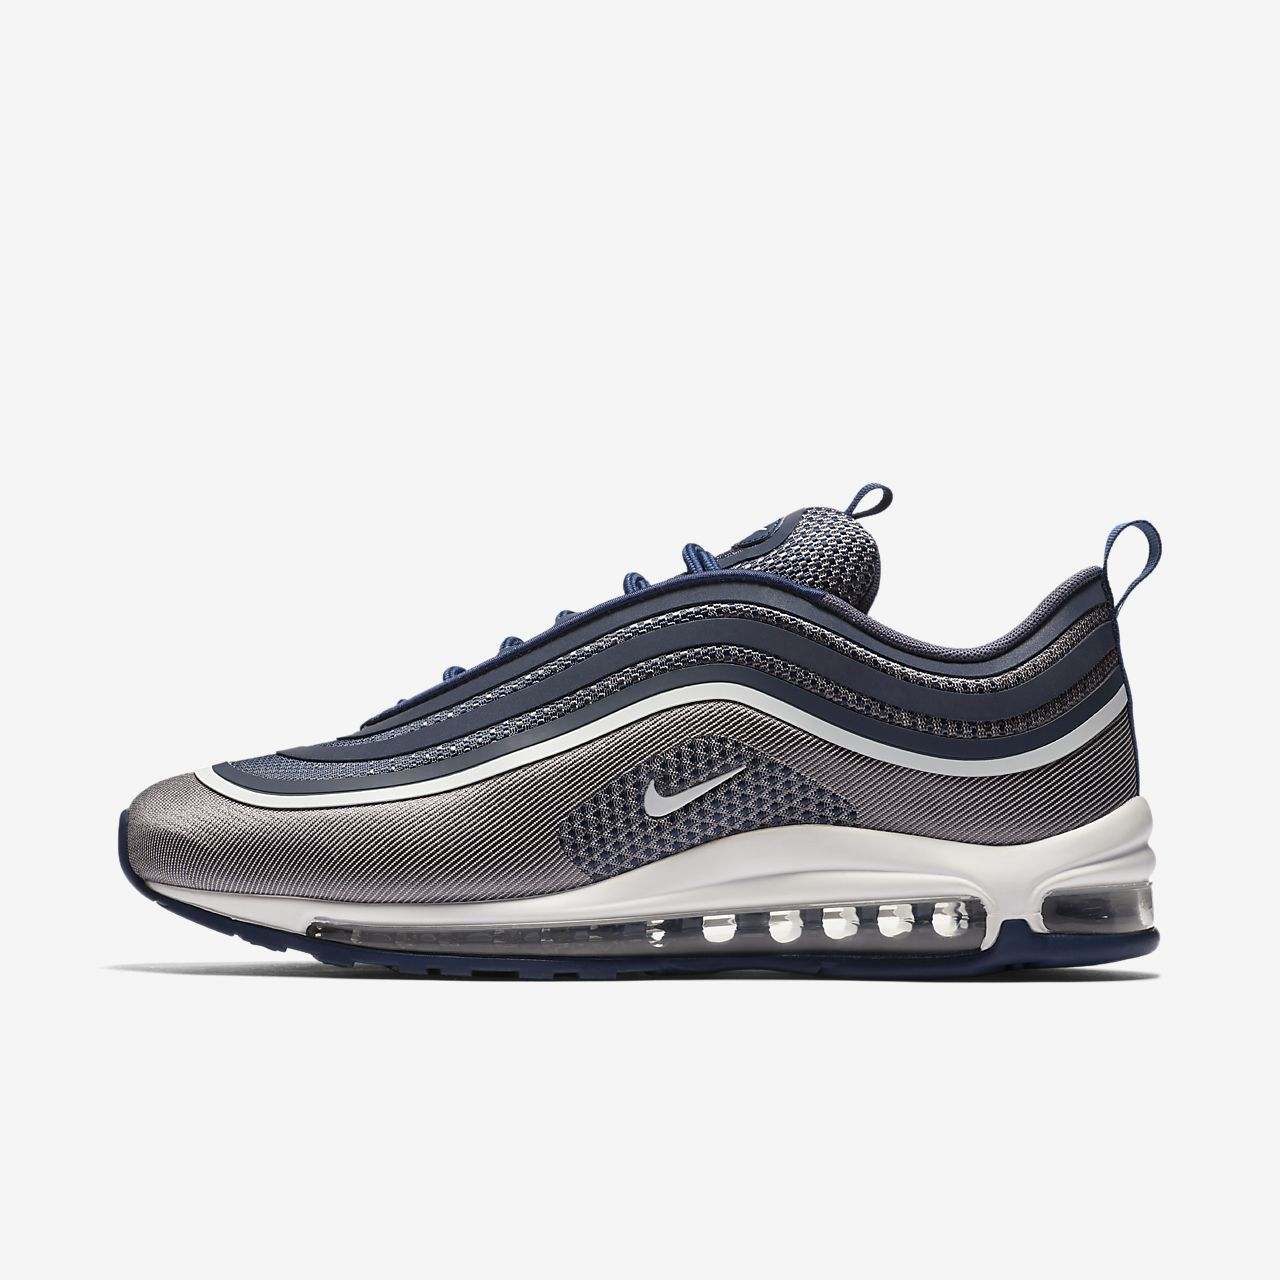 Nike Air Max 97 Ultra '17 Sportscene